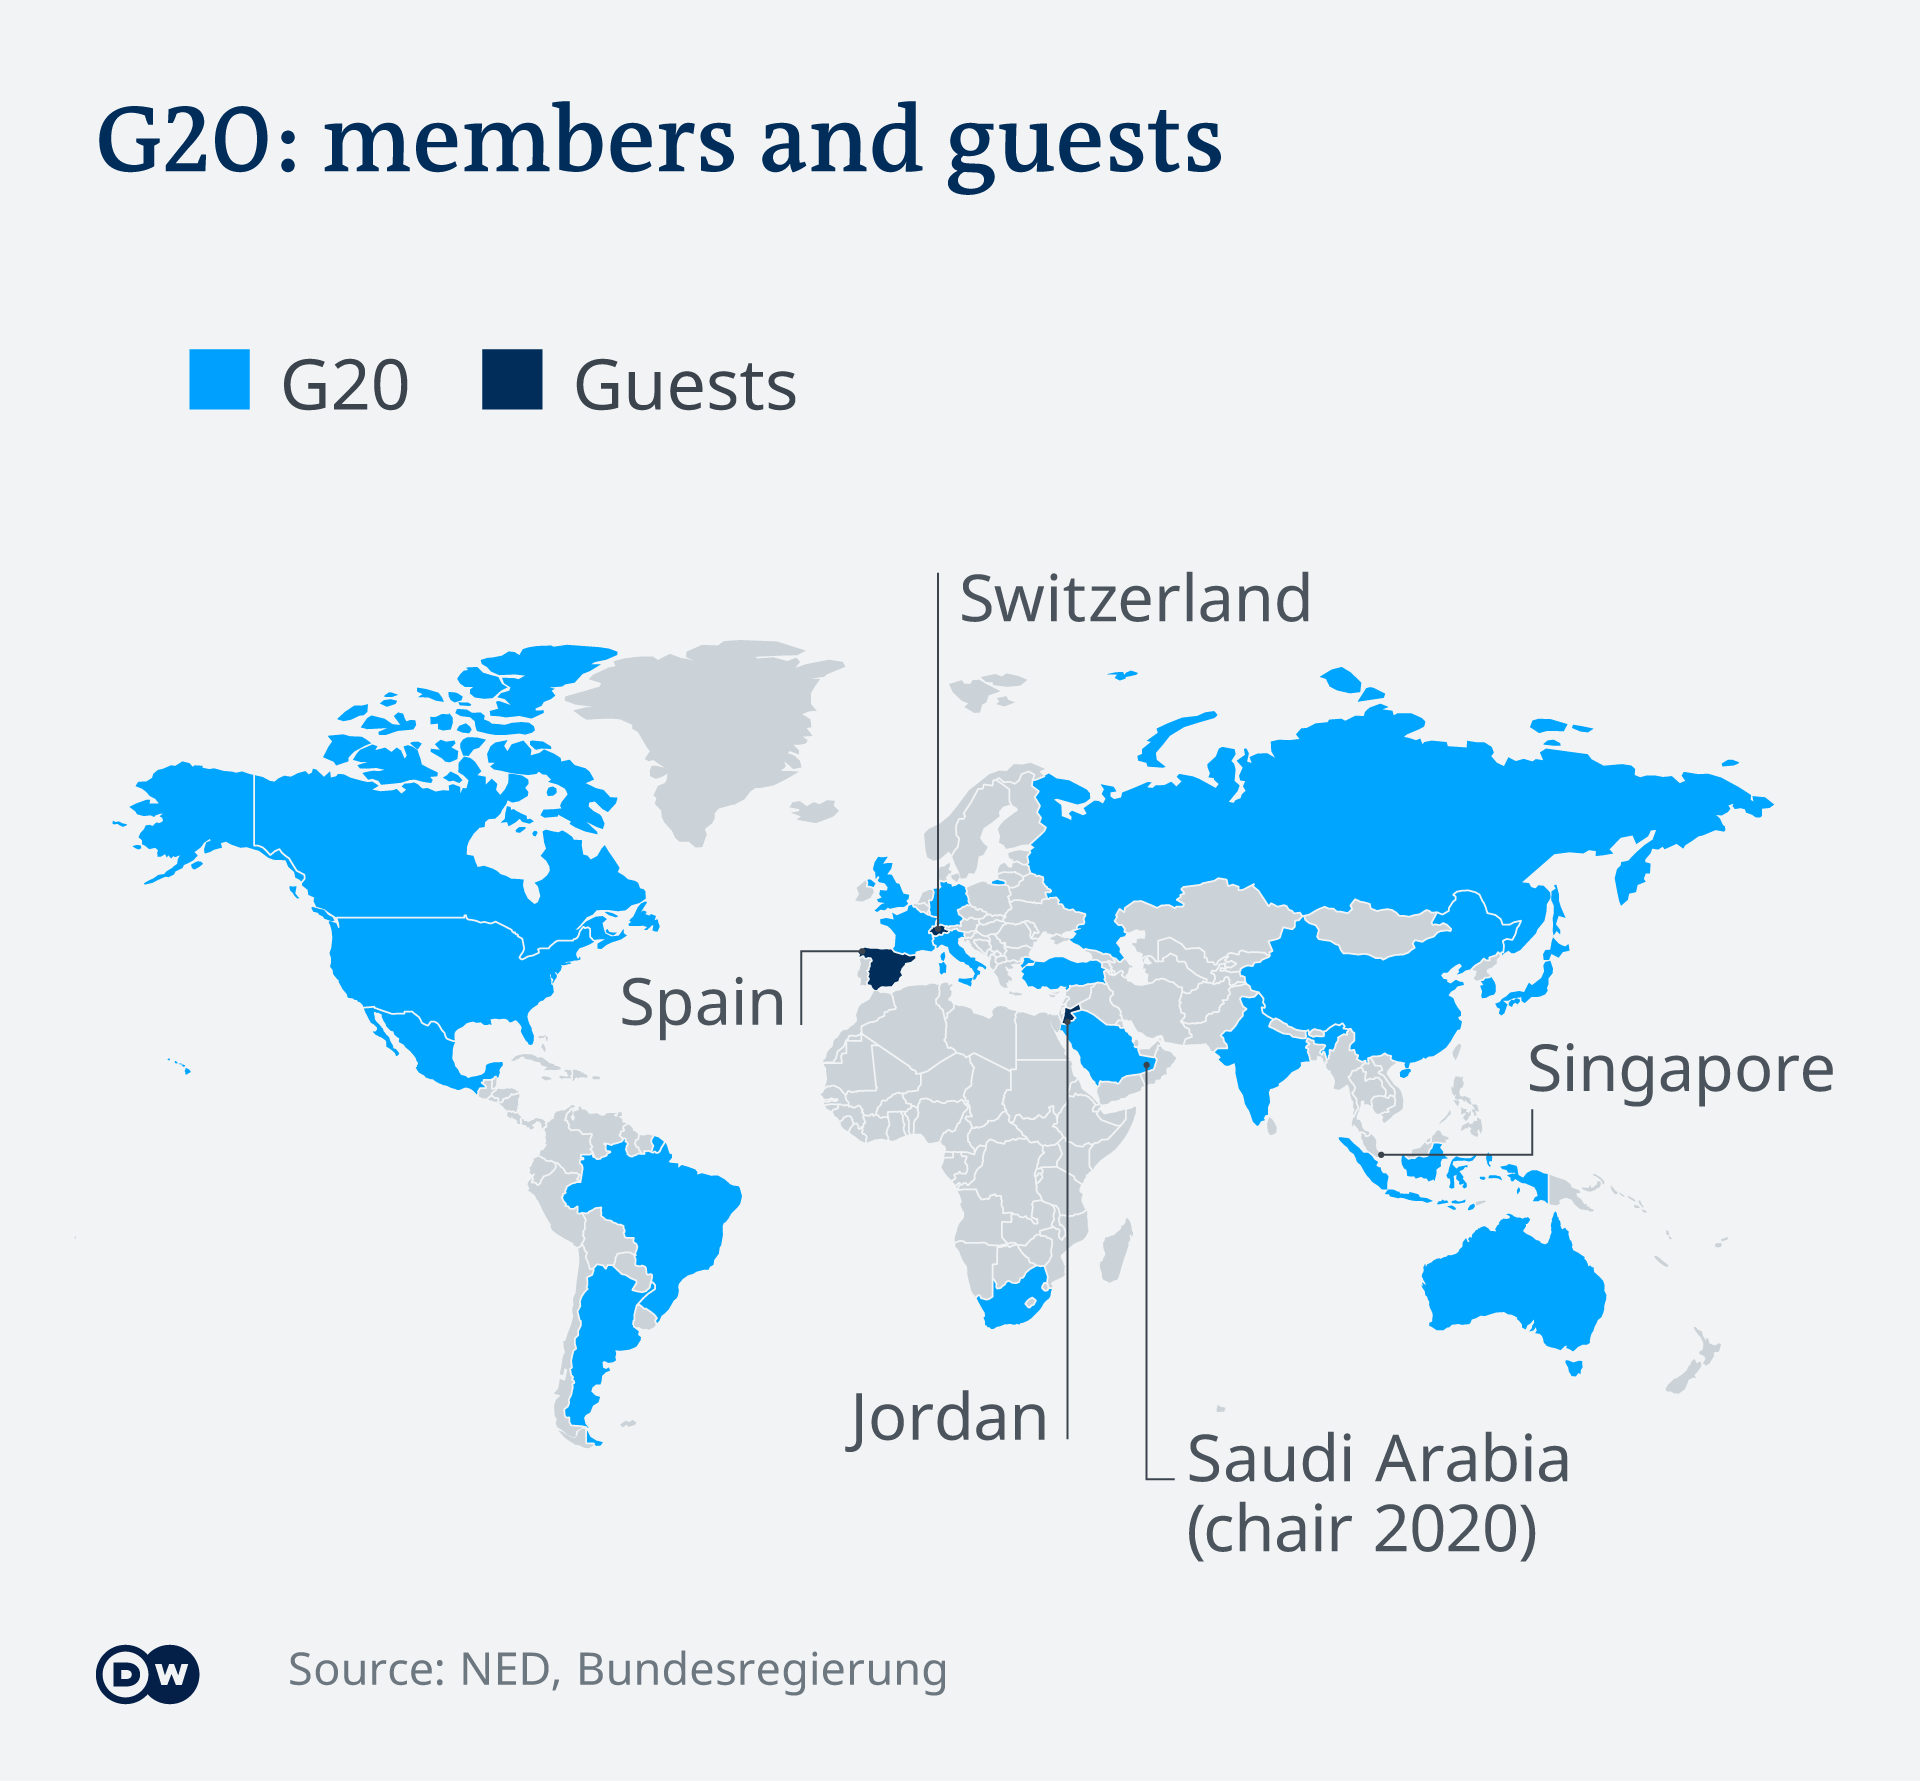 Infographic showing the G20 states and guest countries